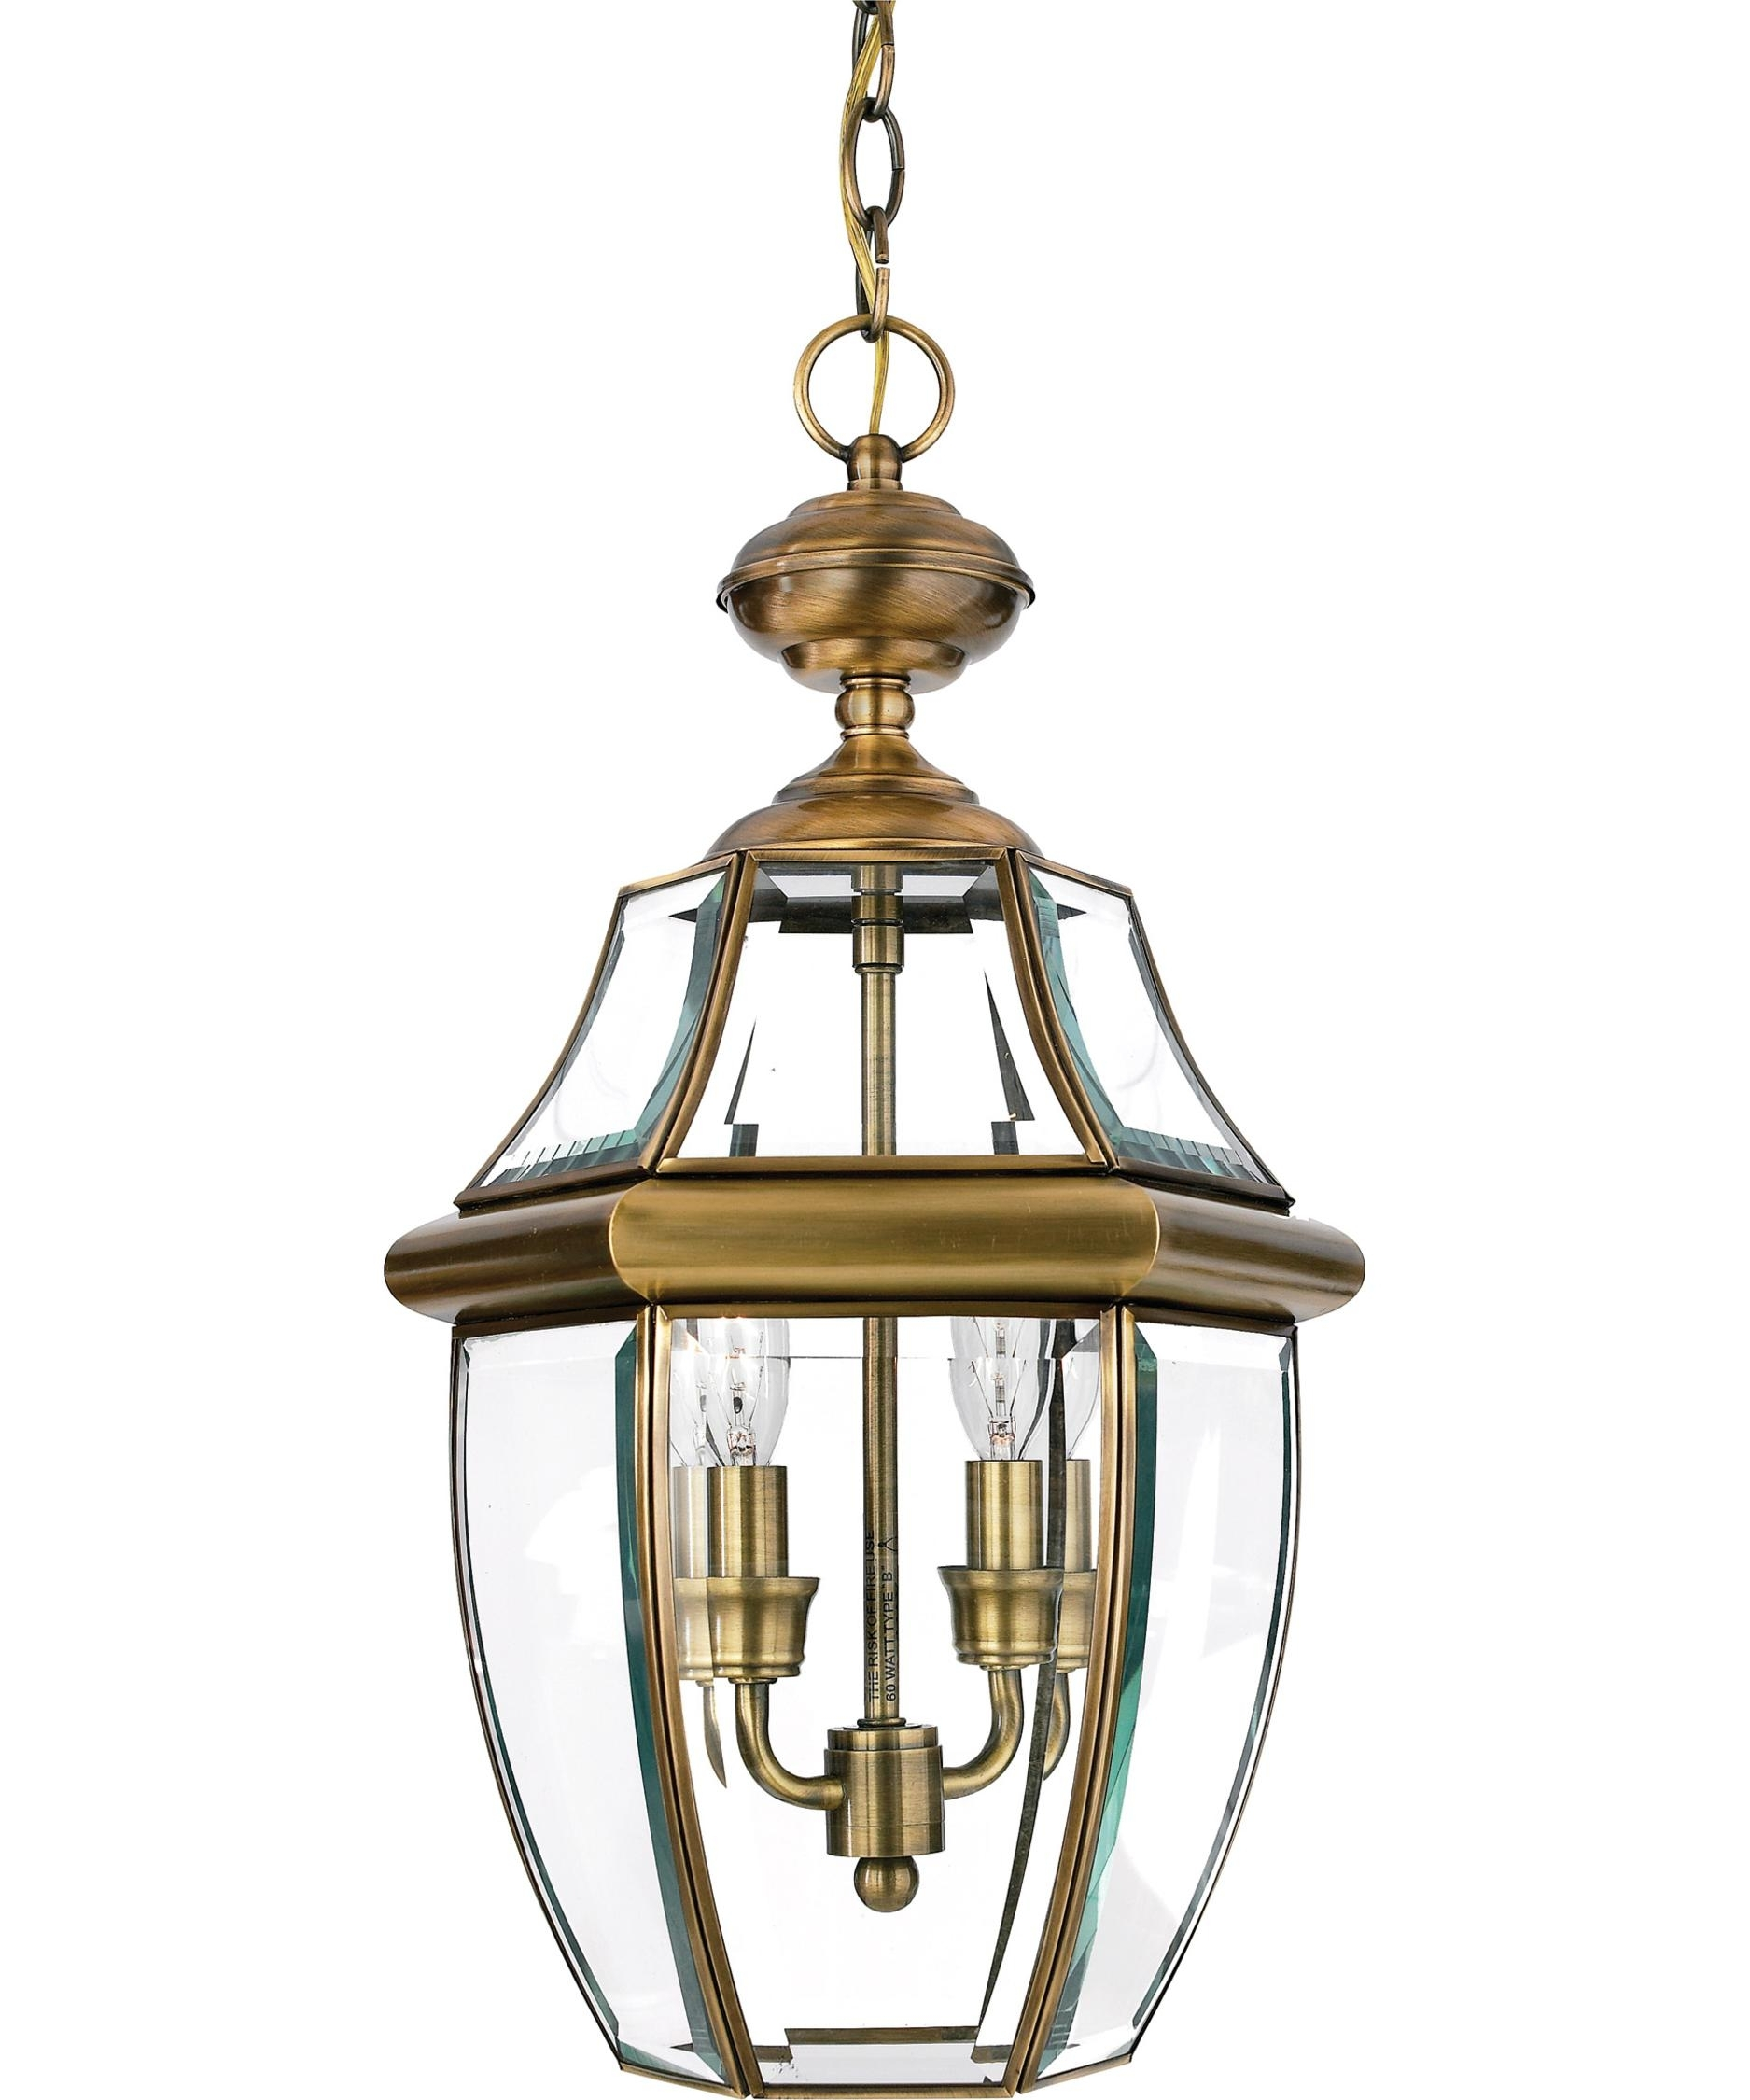 Quoizel Ny1178 Newbury 10 Inch Wide 2 Light Outdoor Hanging Lantern with Outdoor Glass Lanterns (Image 15 of 20)